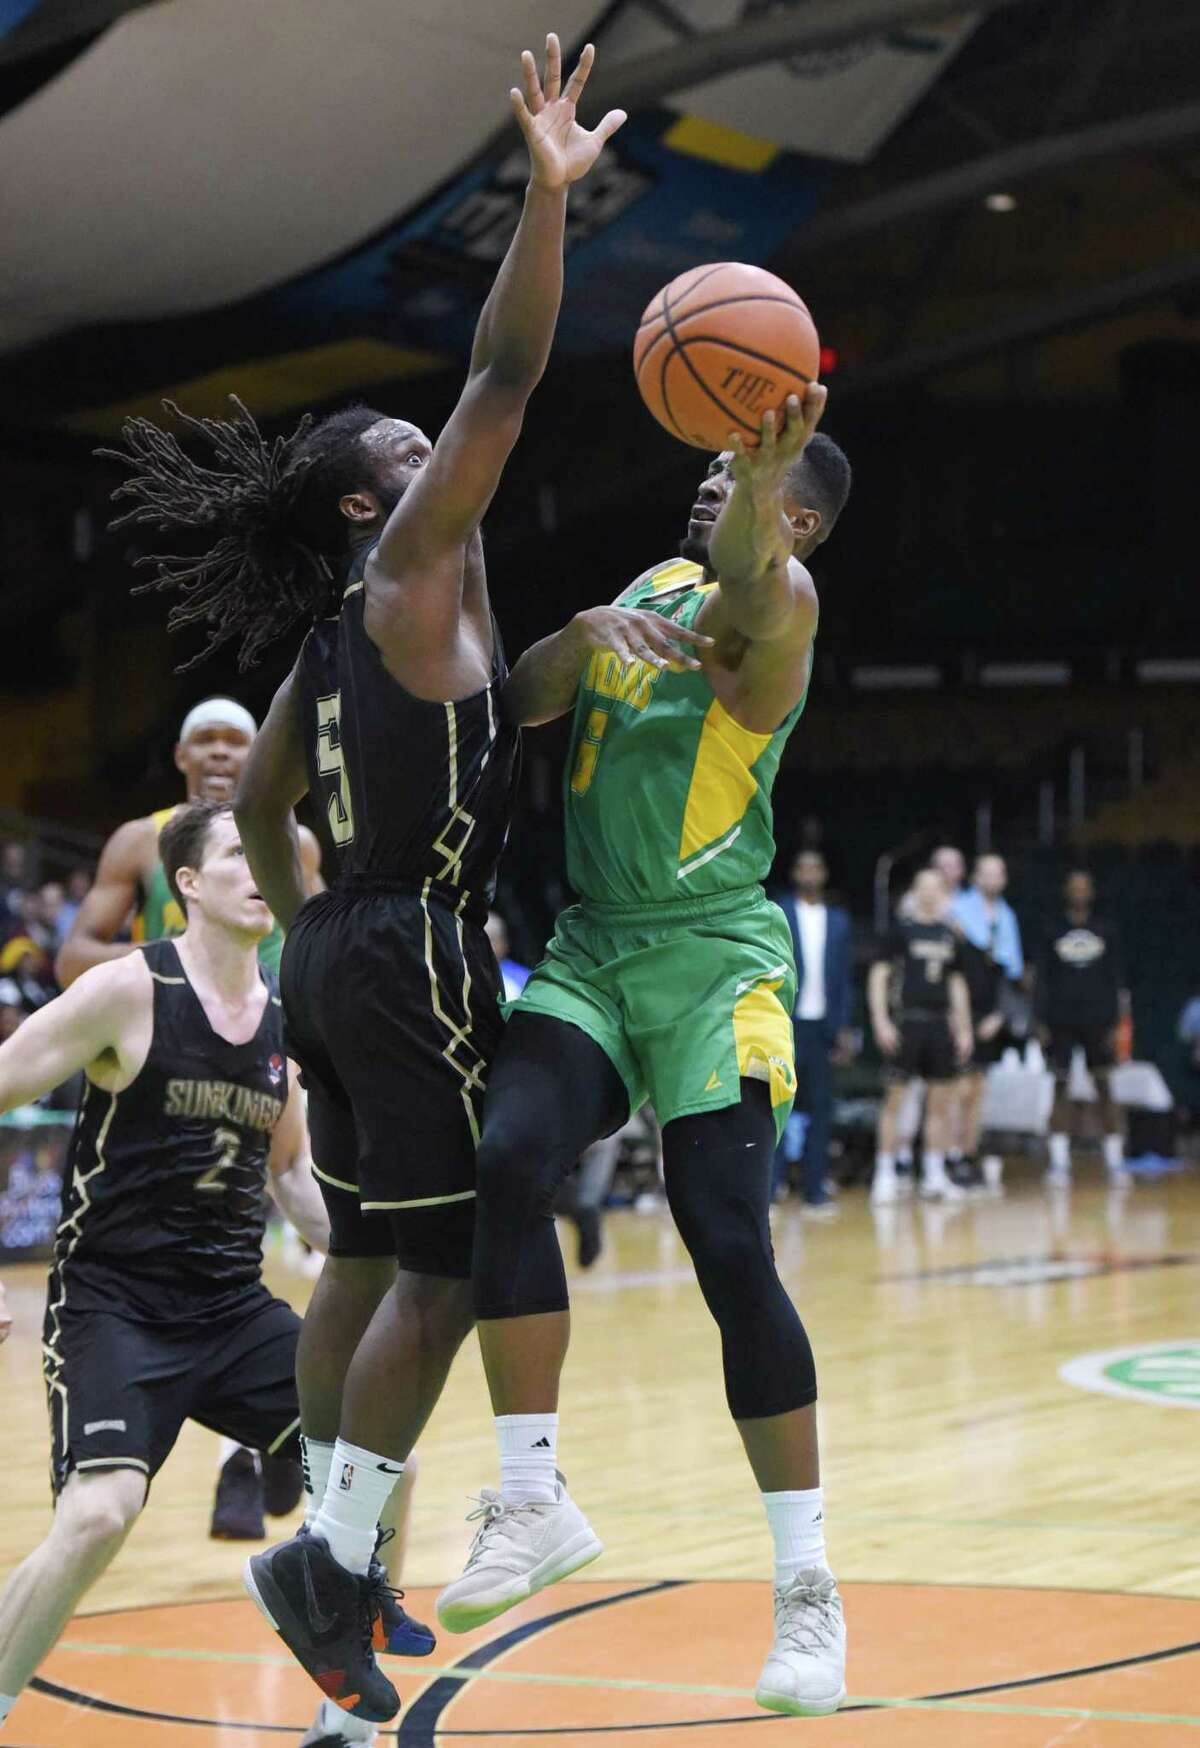 Albany Patroons guard Joshua Cameron pivots to take a shot at the basket during the championship game against the Yakima SunKings on Friday, May 3, 2019 at the Washington Avenue Armory in Albany, NY. (Phoebe Sheehan/Times Union)